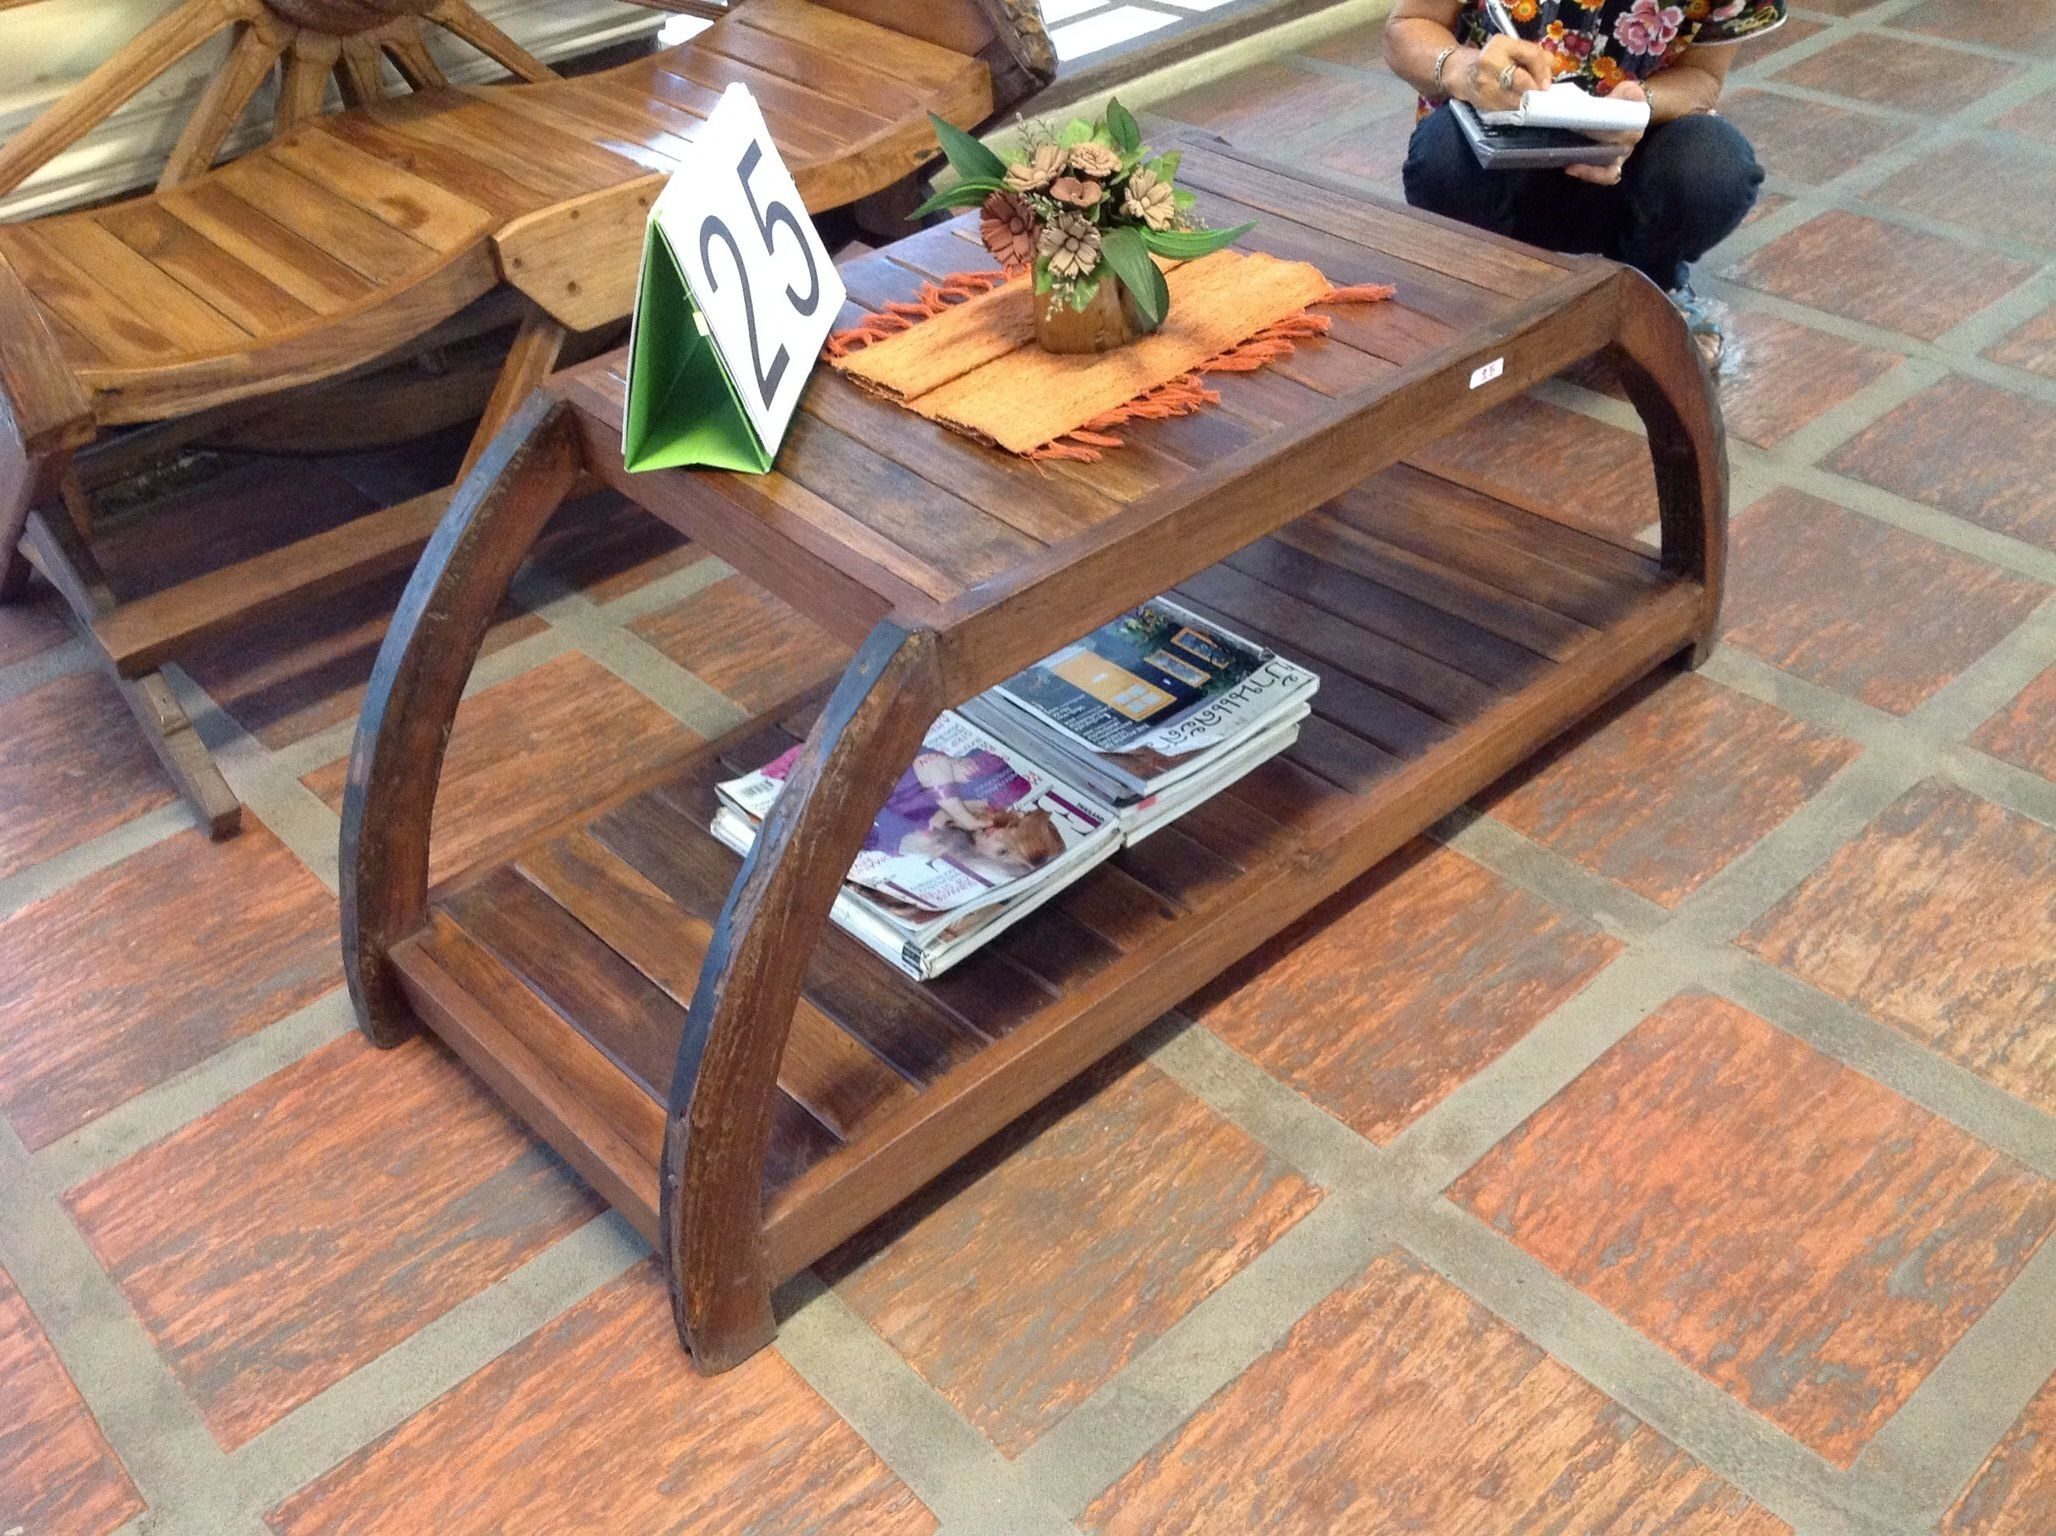 Handcrafted reclaimed ox cart teak wood console from Chiang Mai